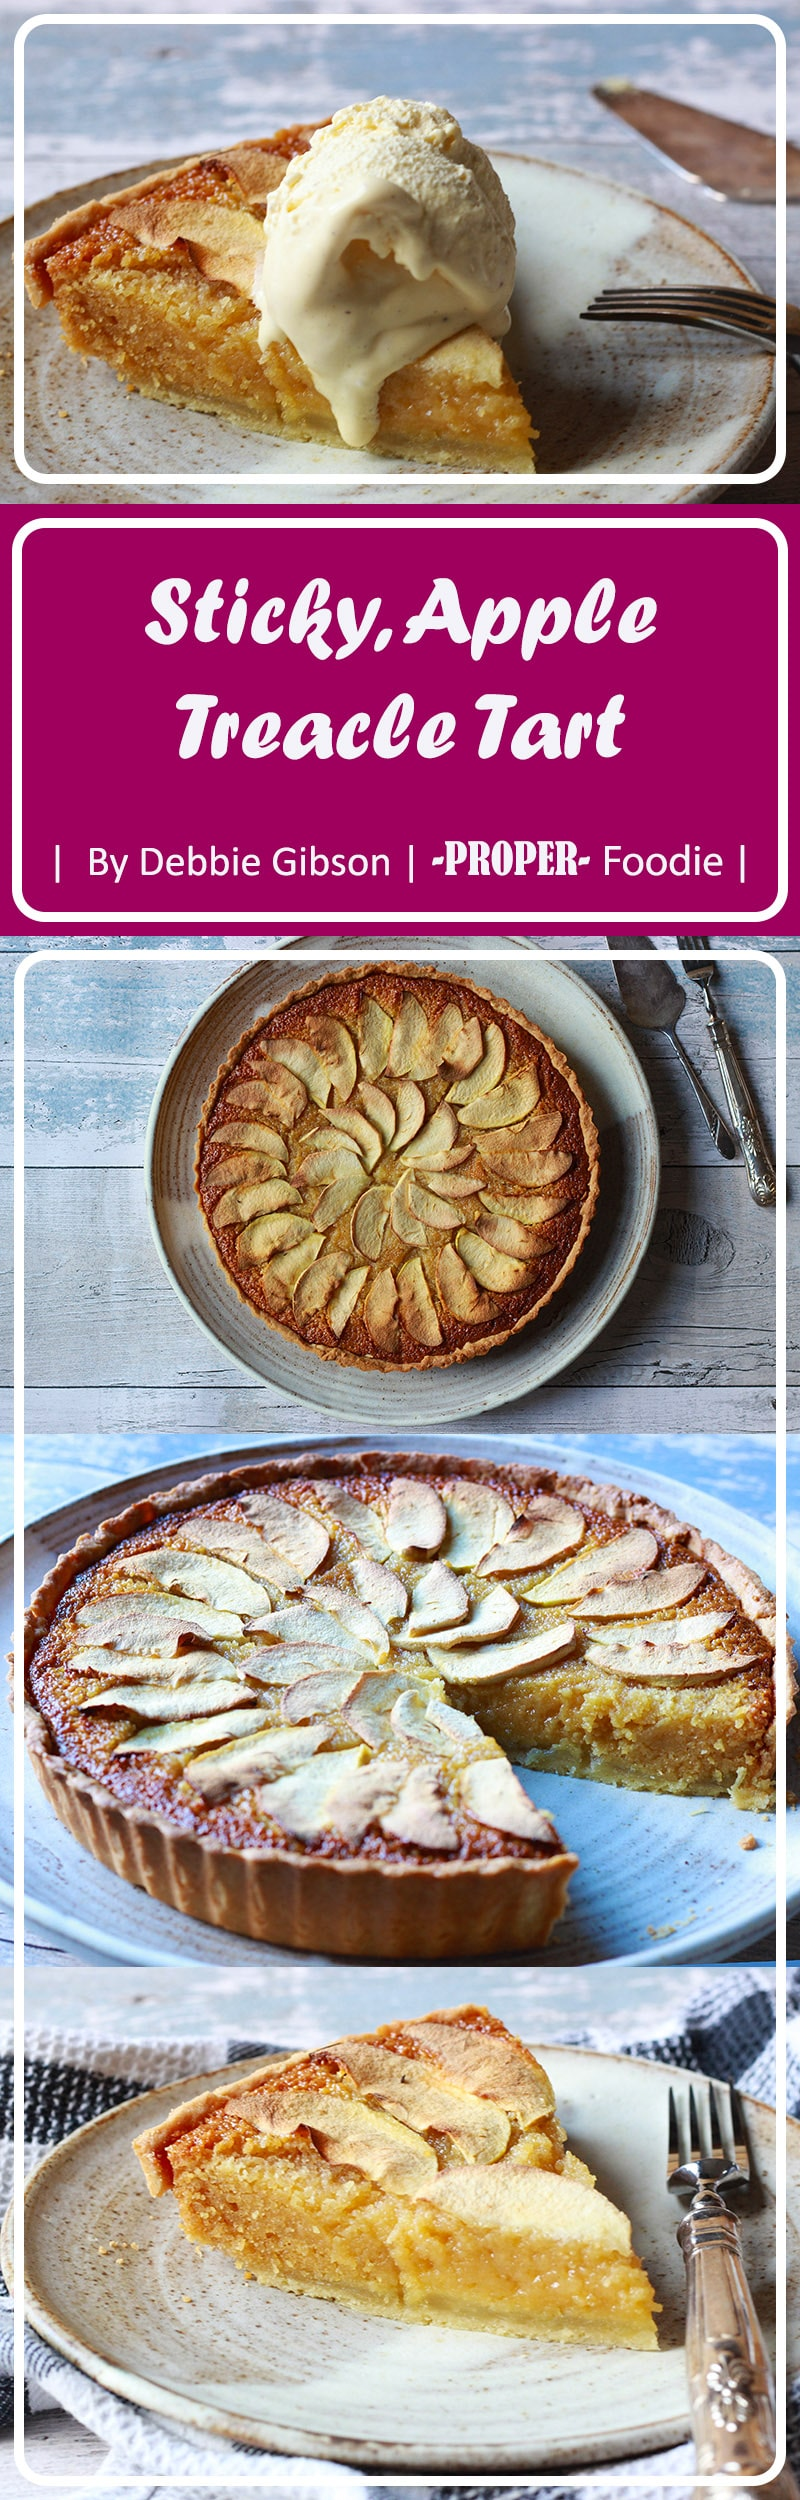 A delightful autumnal dessert with stewed apples, a treacle filling, warming syrupy flavours and a crumbly, sweet pastry base.